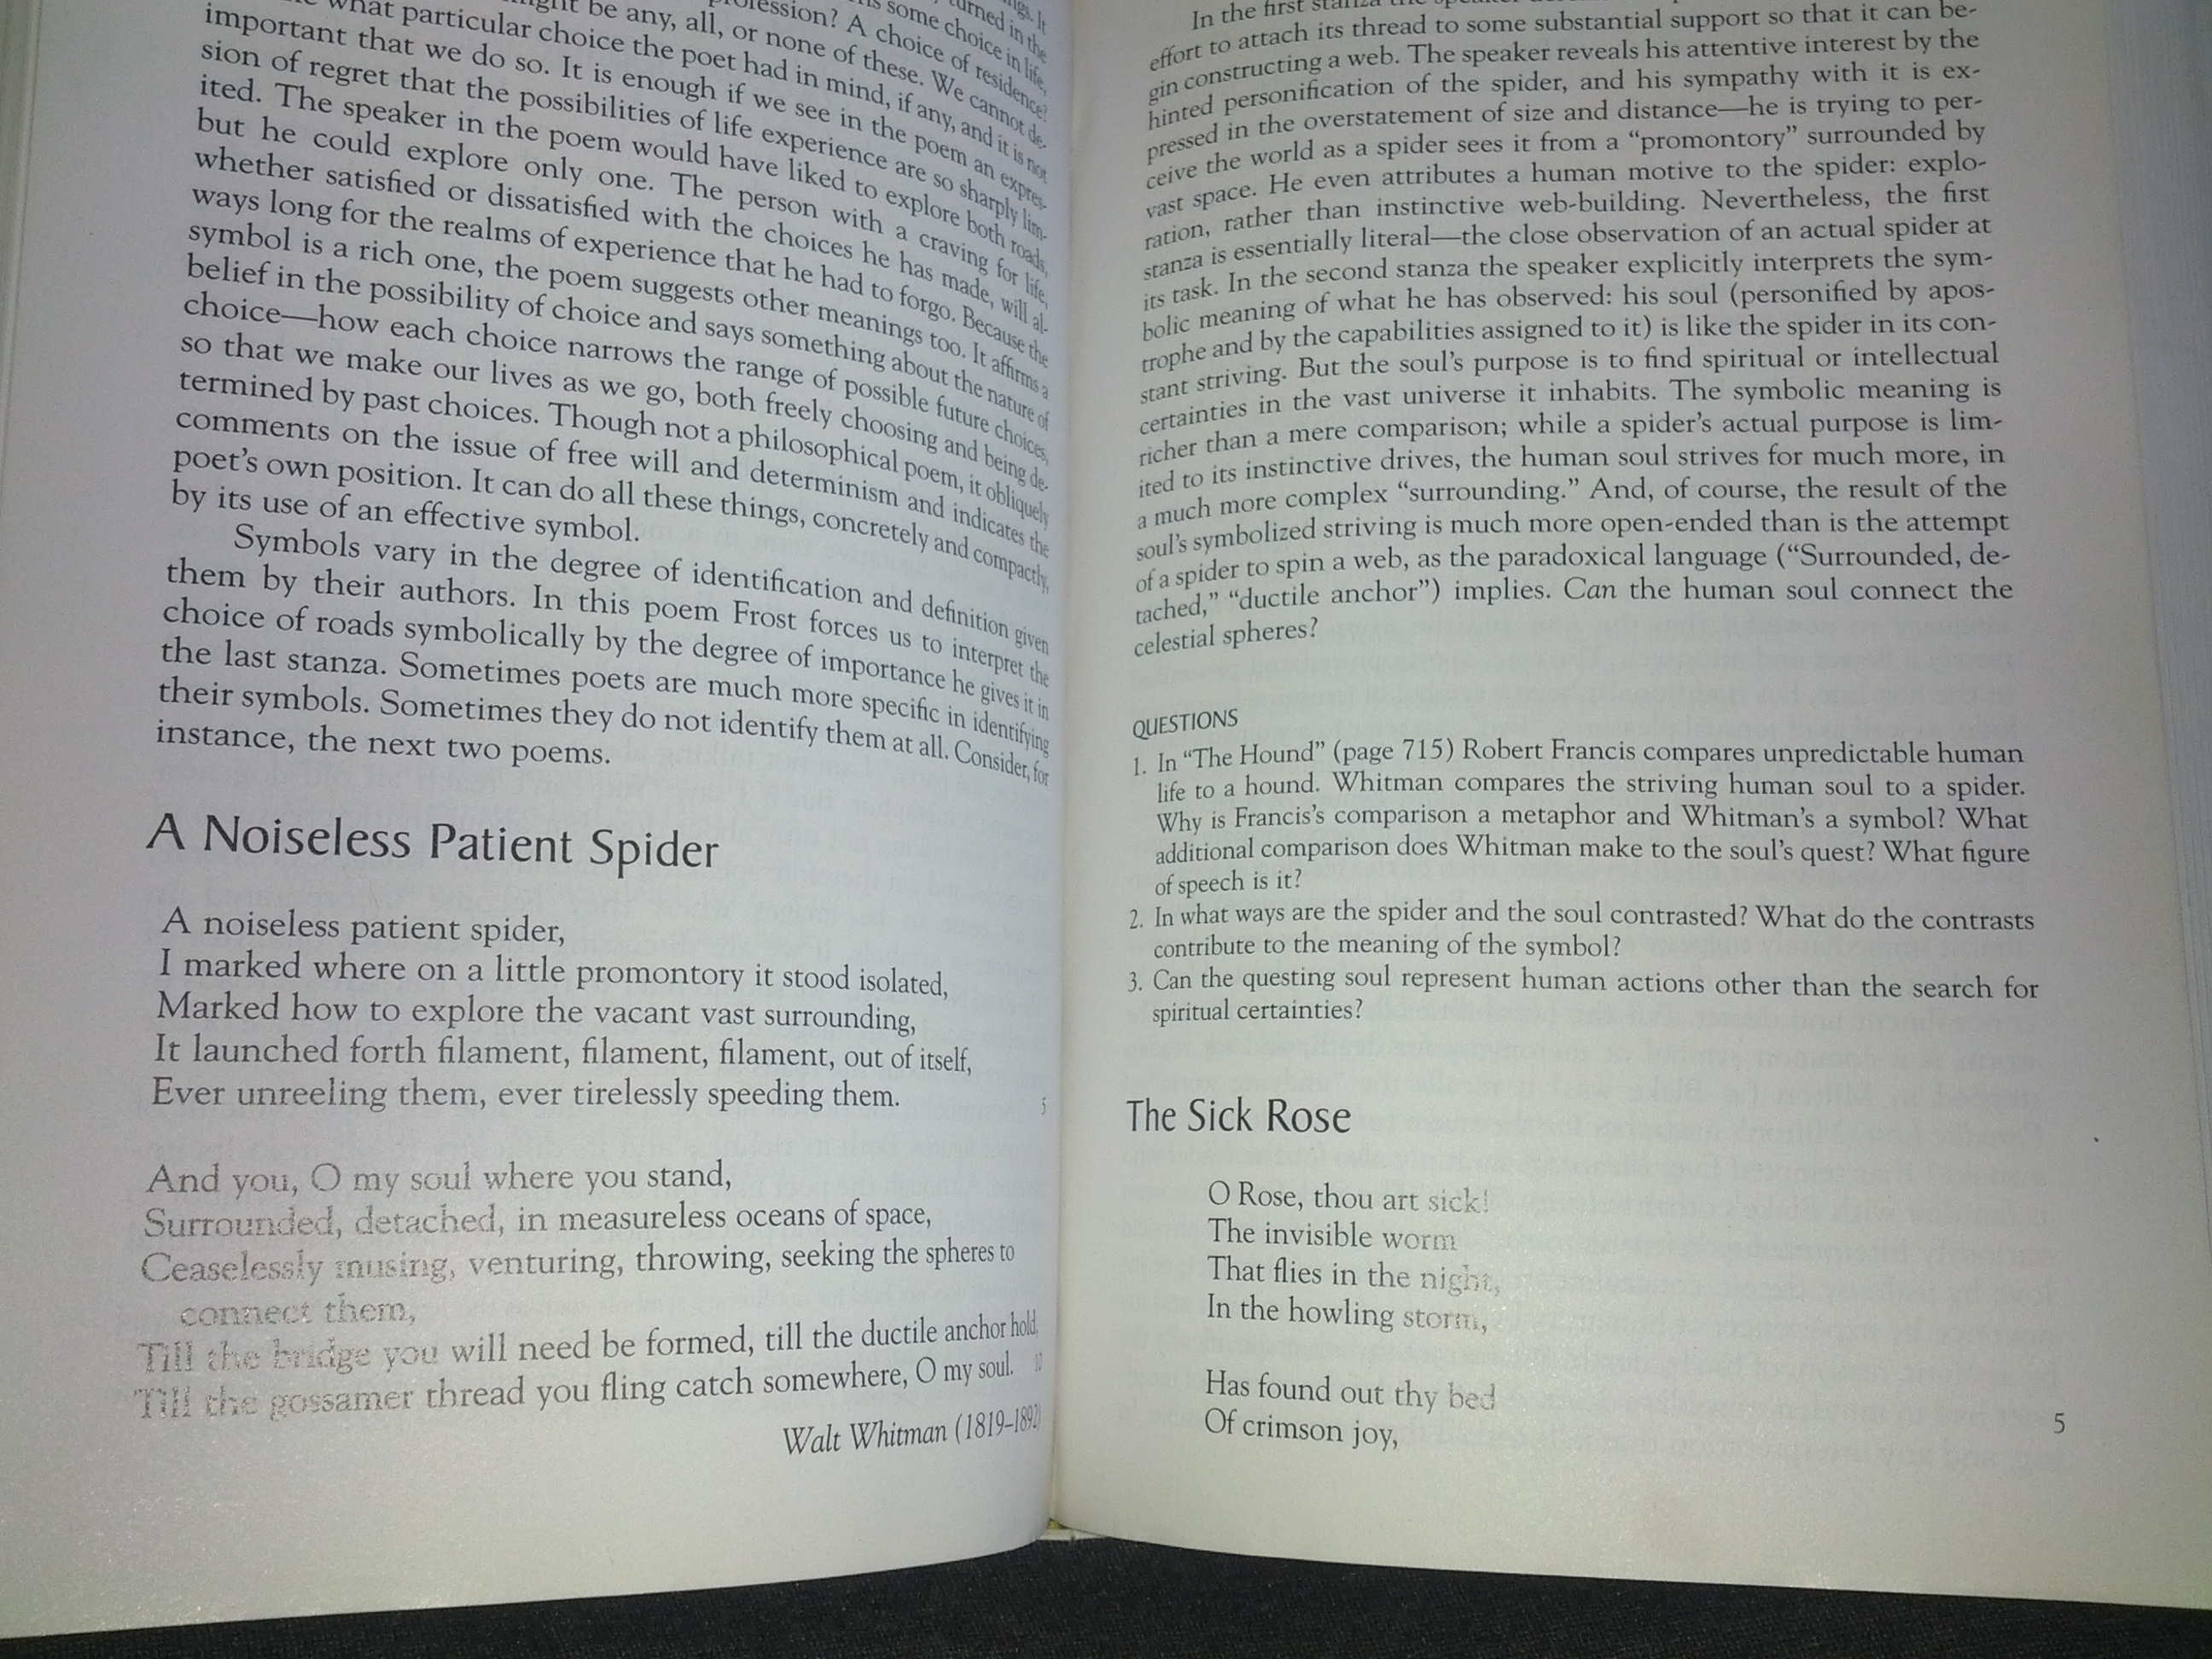 a noiseless patient spider response paper One of the themes explored in the poem a noiseless patient spider by walt  whitman is the search for meaning in life, for sustenance for the soul in this  essay.